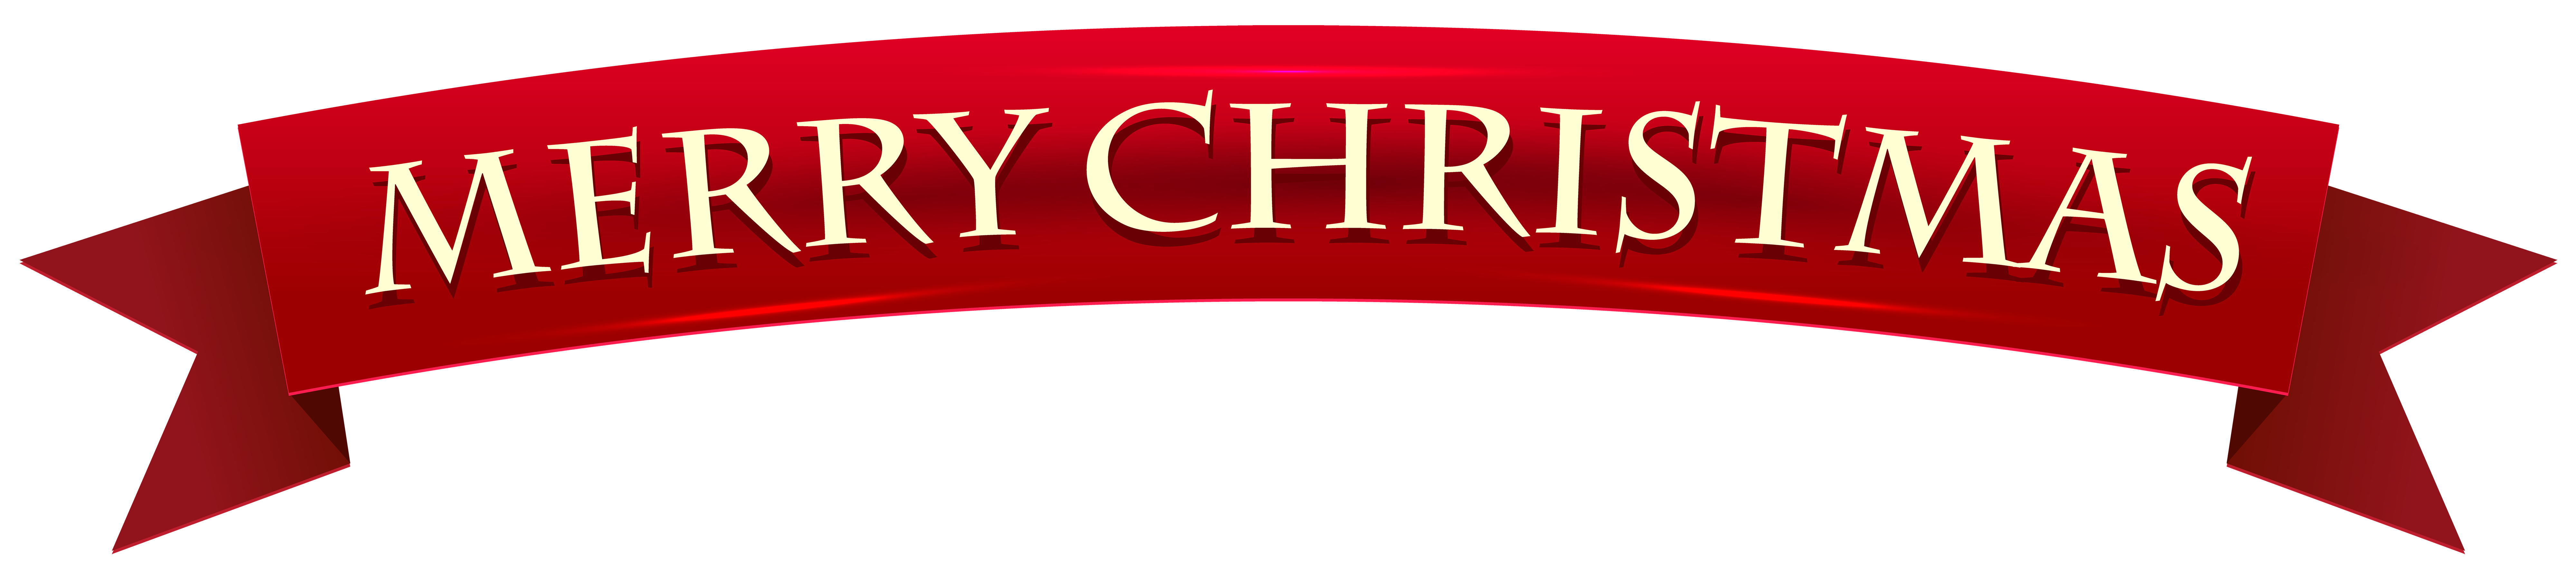 medium resolution of banner merry christmas transparent clip art image